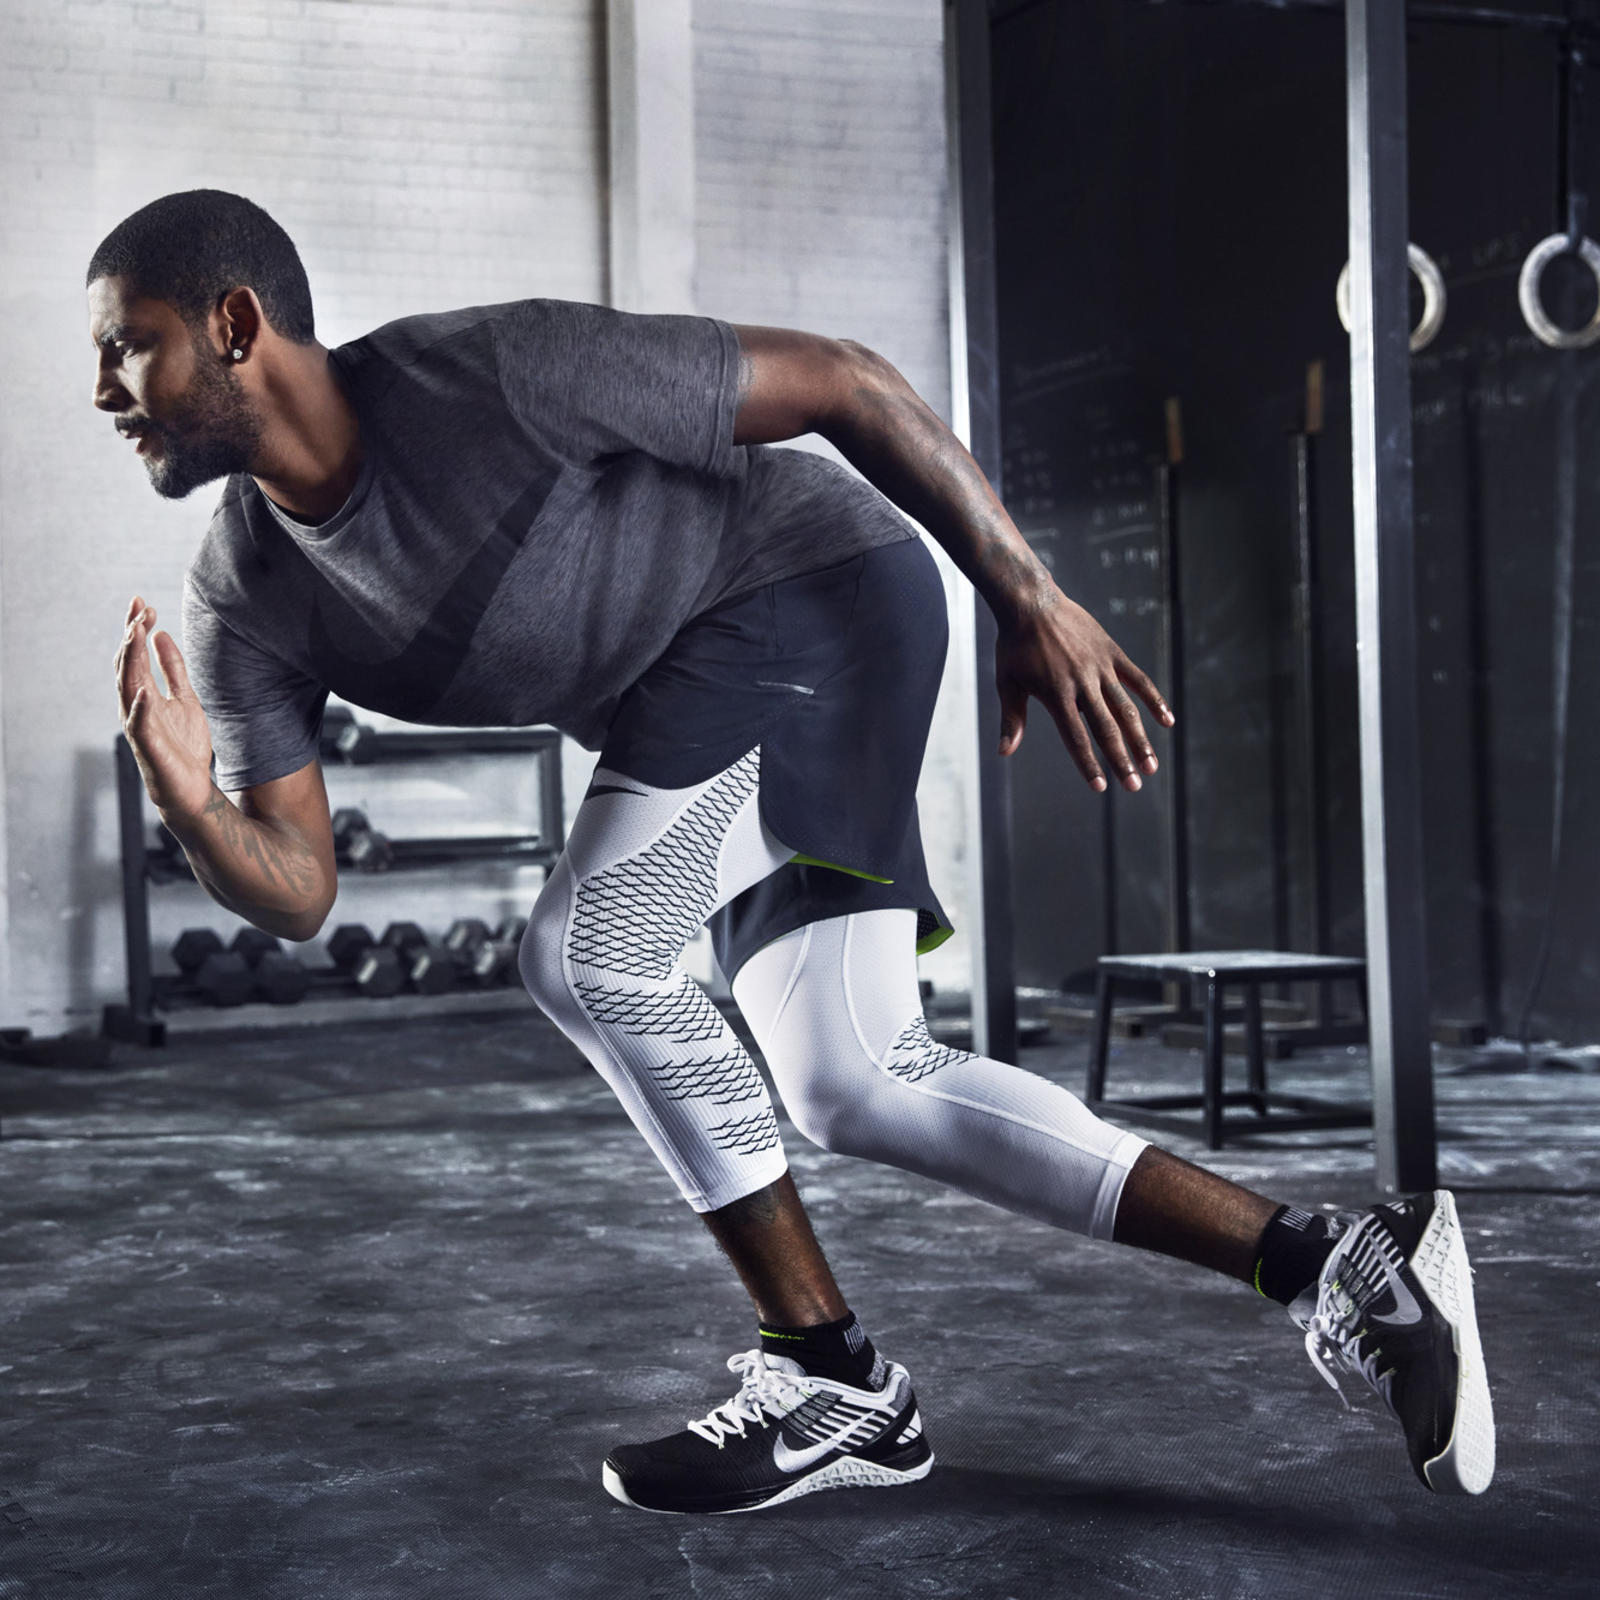 Nike Meets Demands Of All Athletes With Expanded Metcon